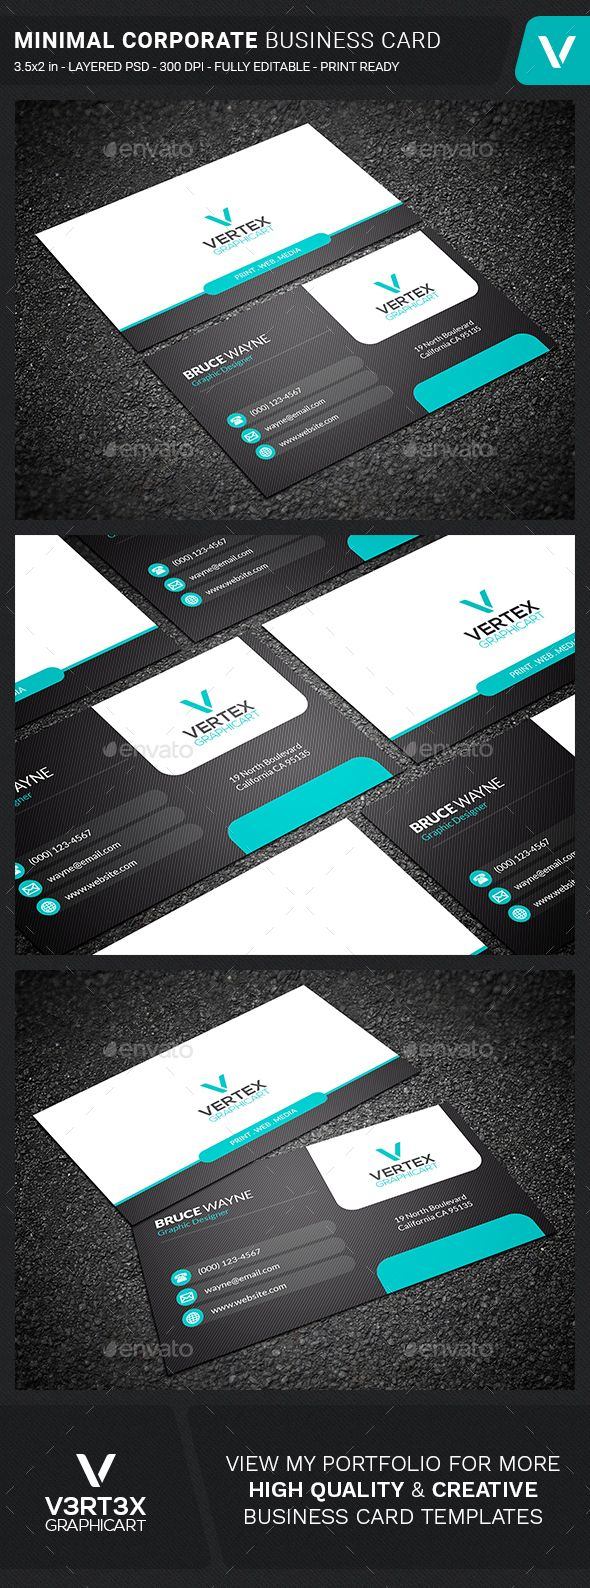 Minimal Corporate Business Card Template PSD. Download here: https://graphicriver.net/item/minimal-corporate-business-card/17370705?ref=ksioks